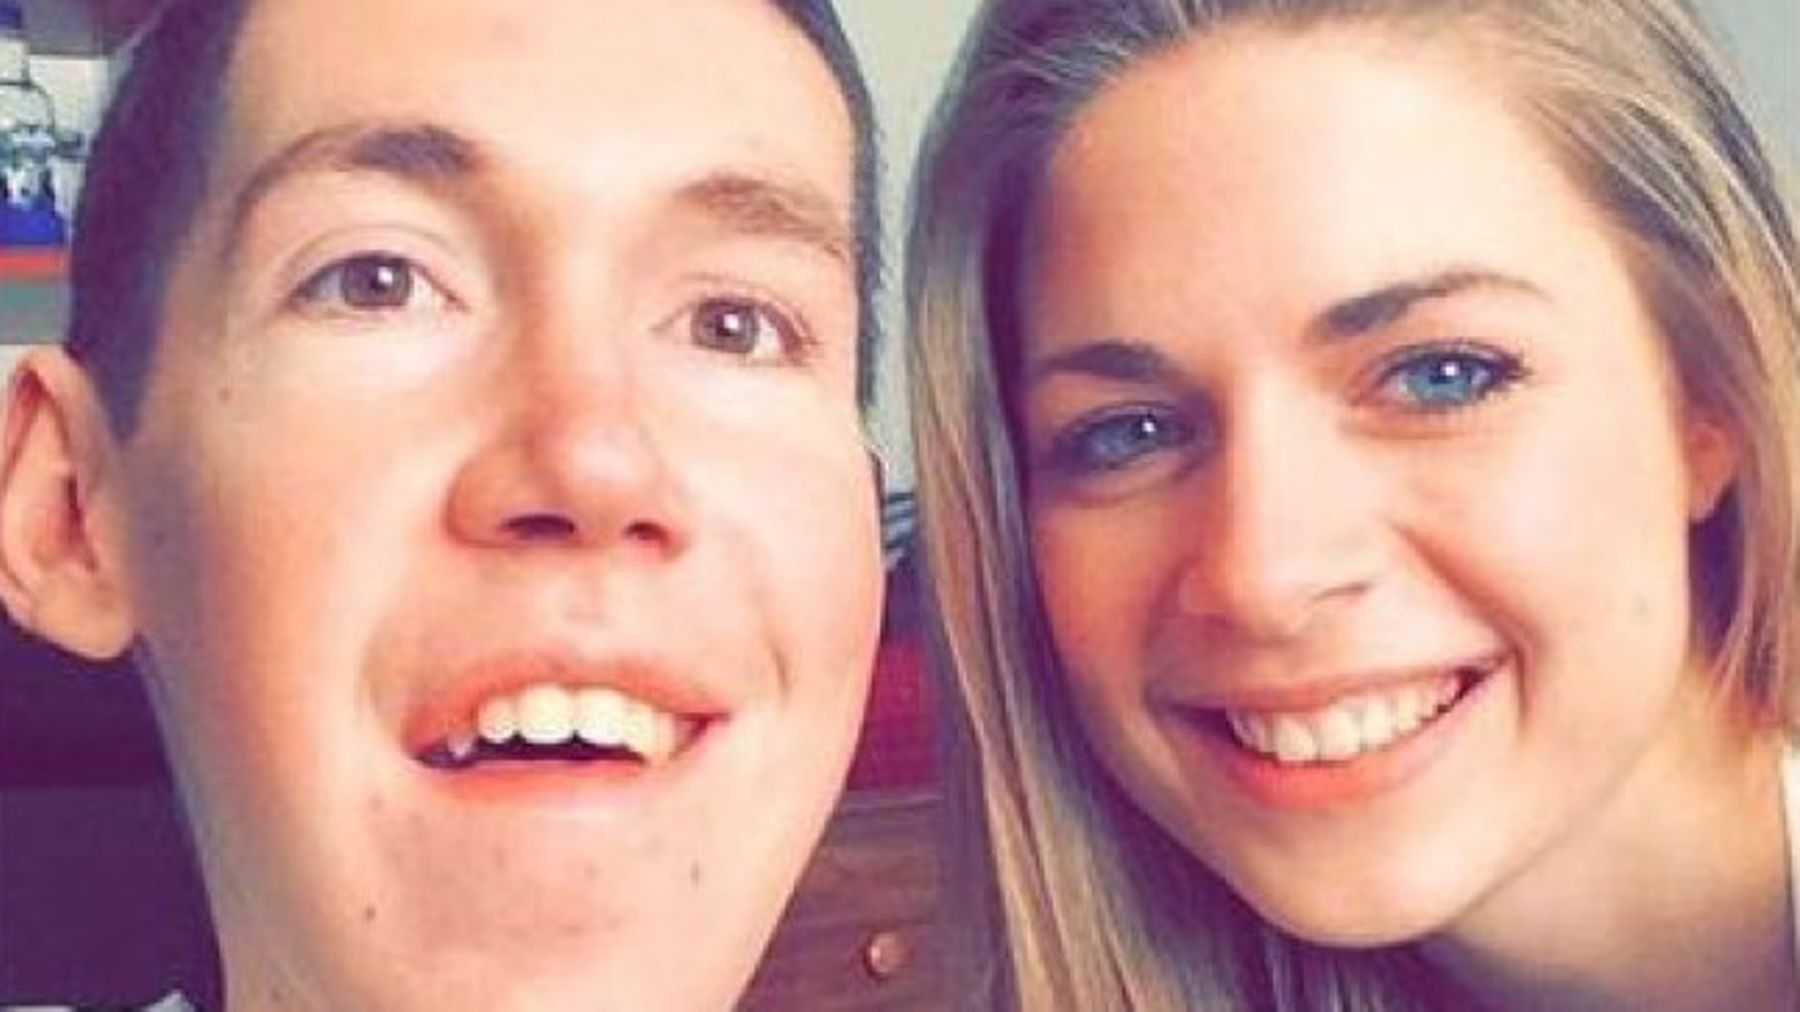 She's my girlfriend, not my carer' – heart-warming story of